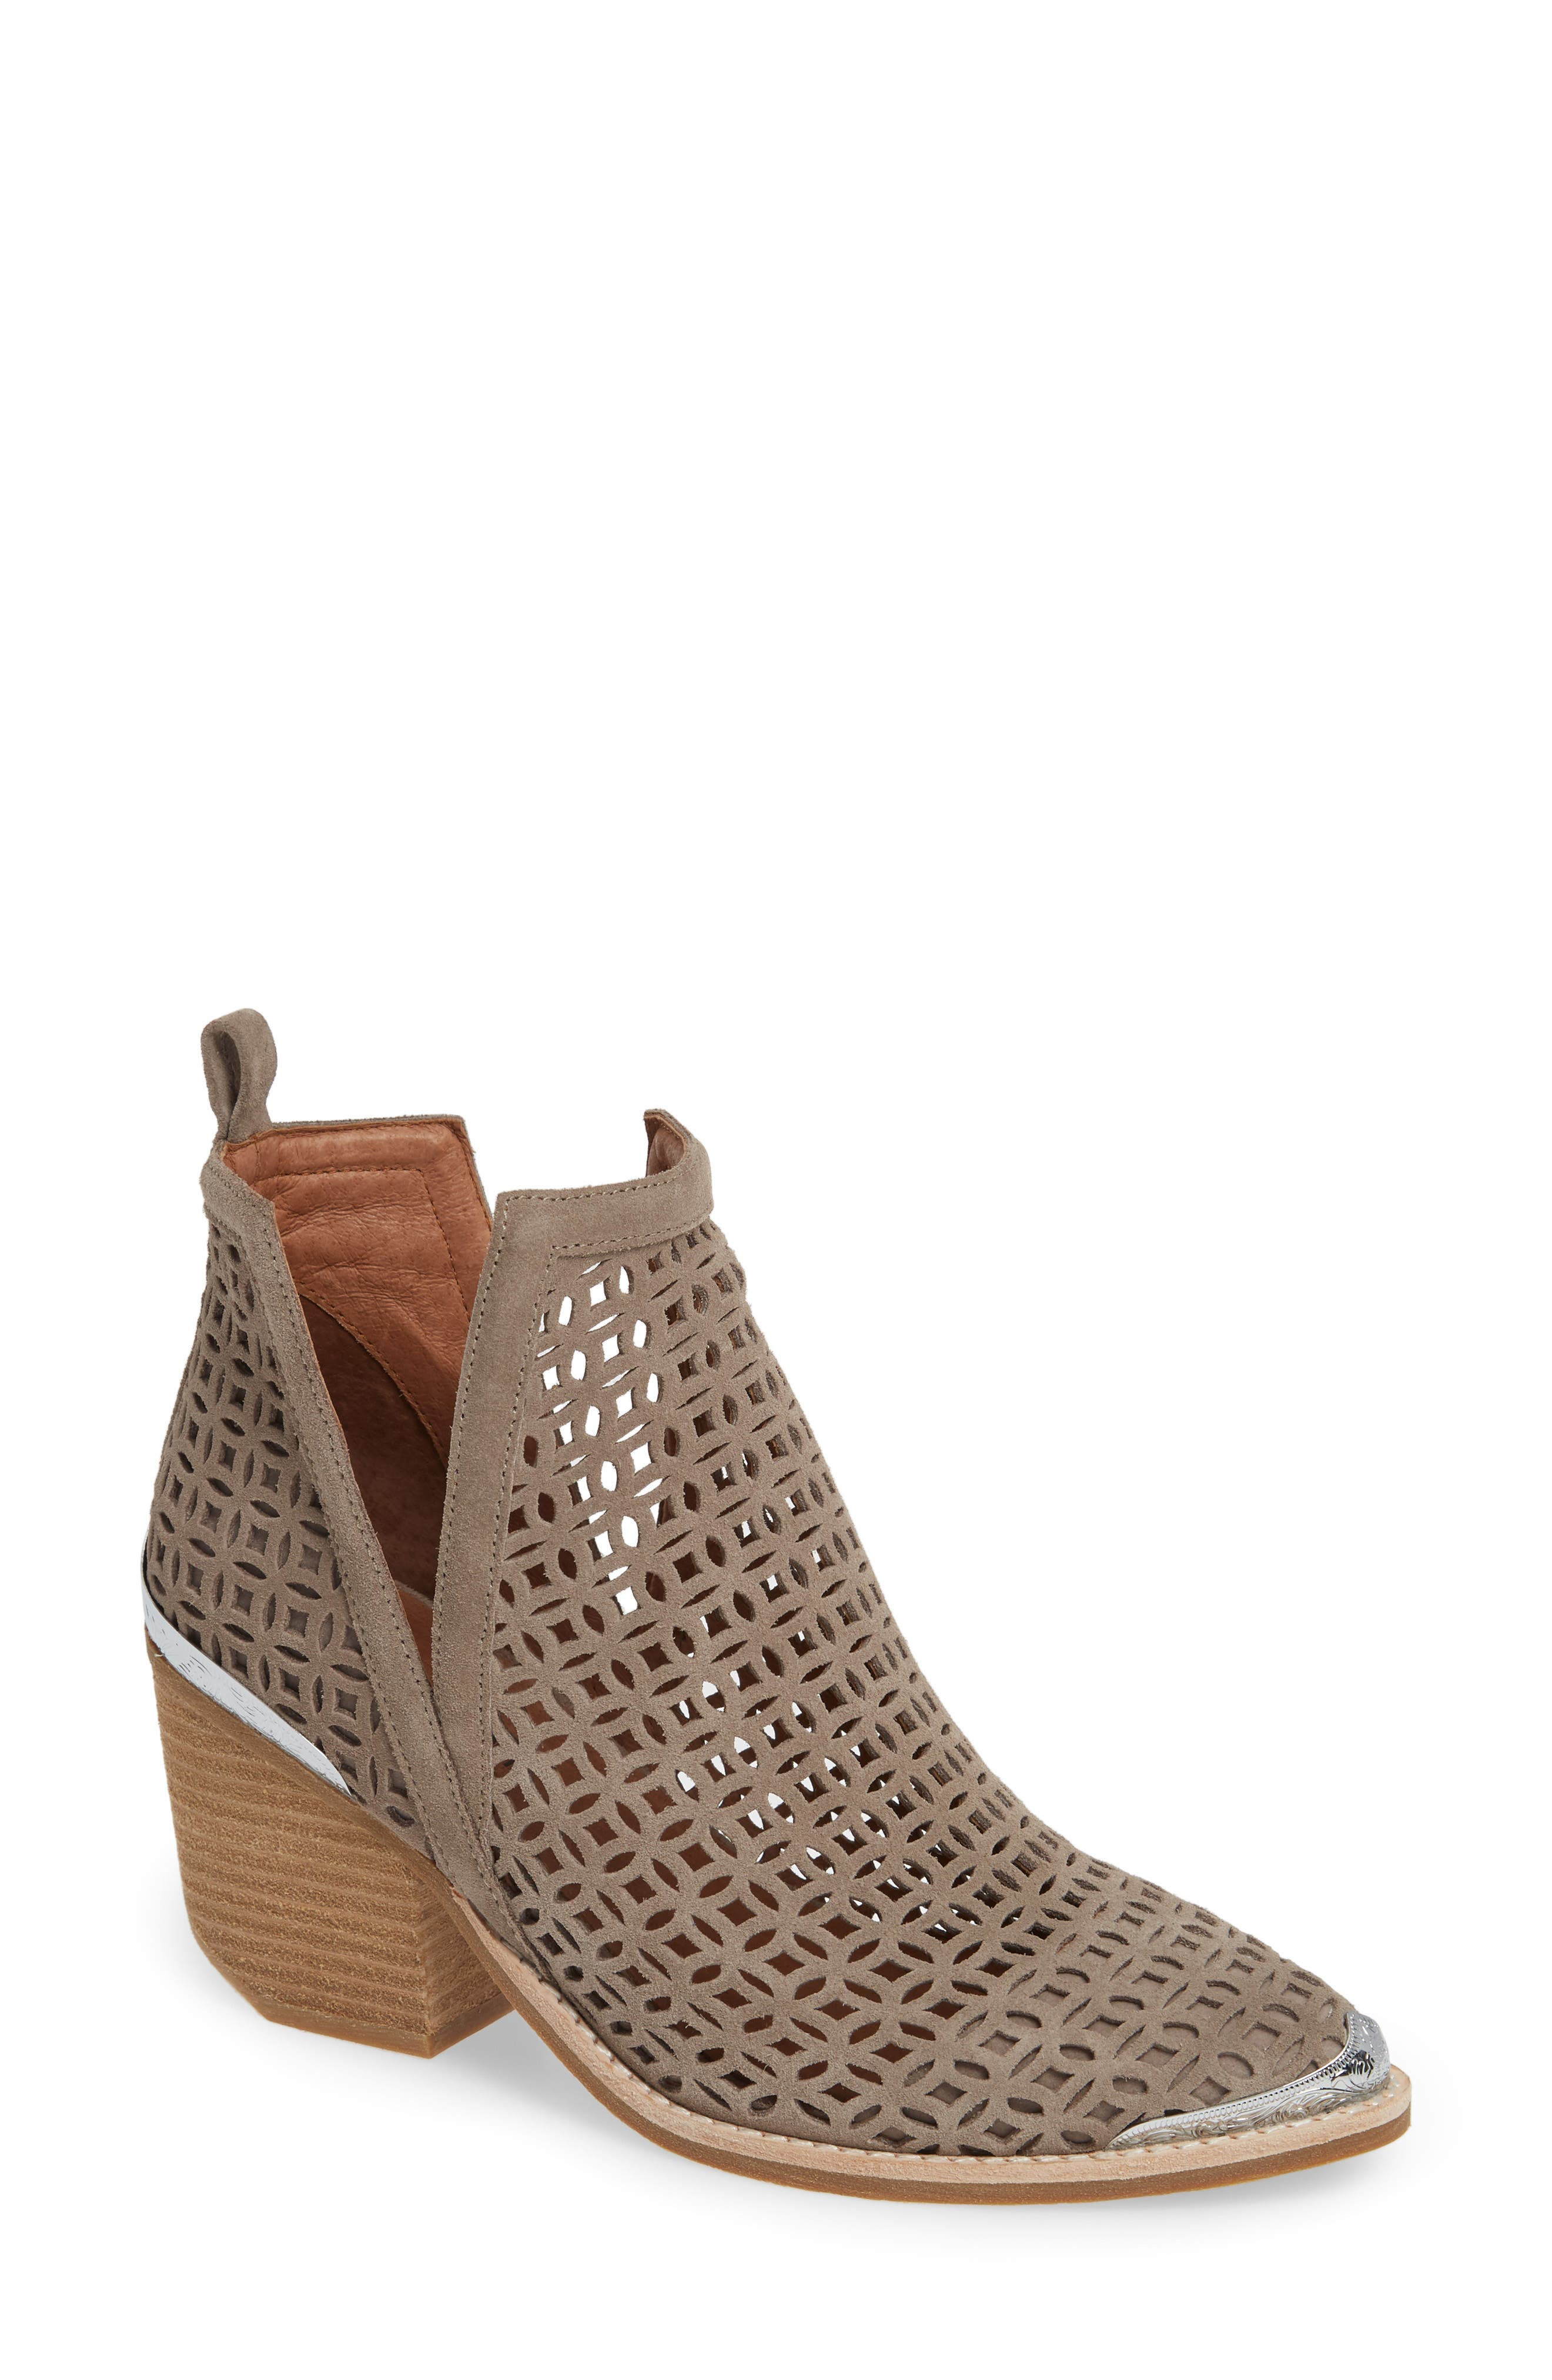 Jeffrey Campbell Cromwell-C2 Perforated Bootie, Beige